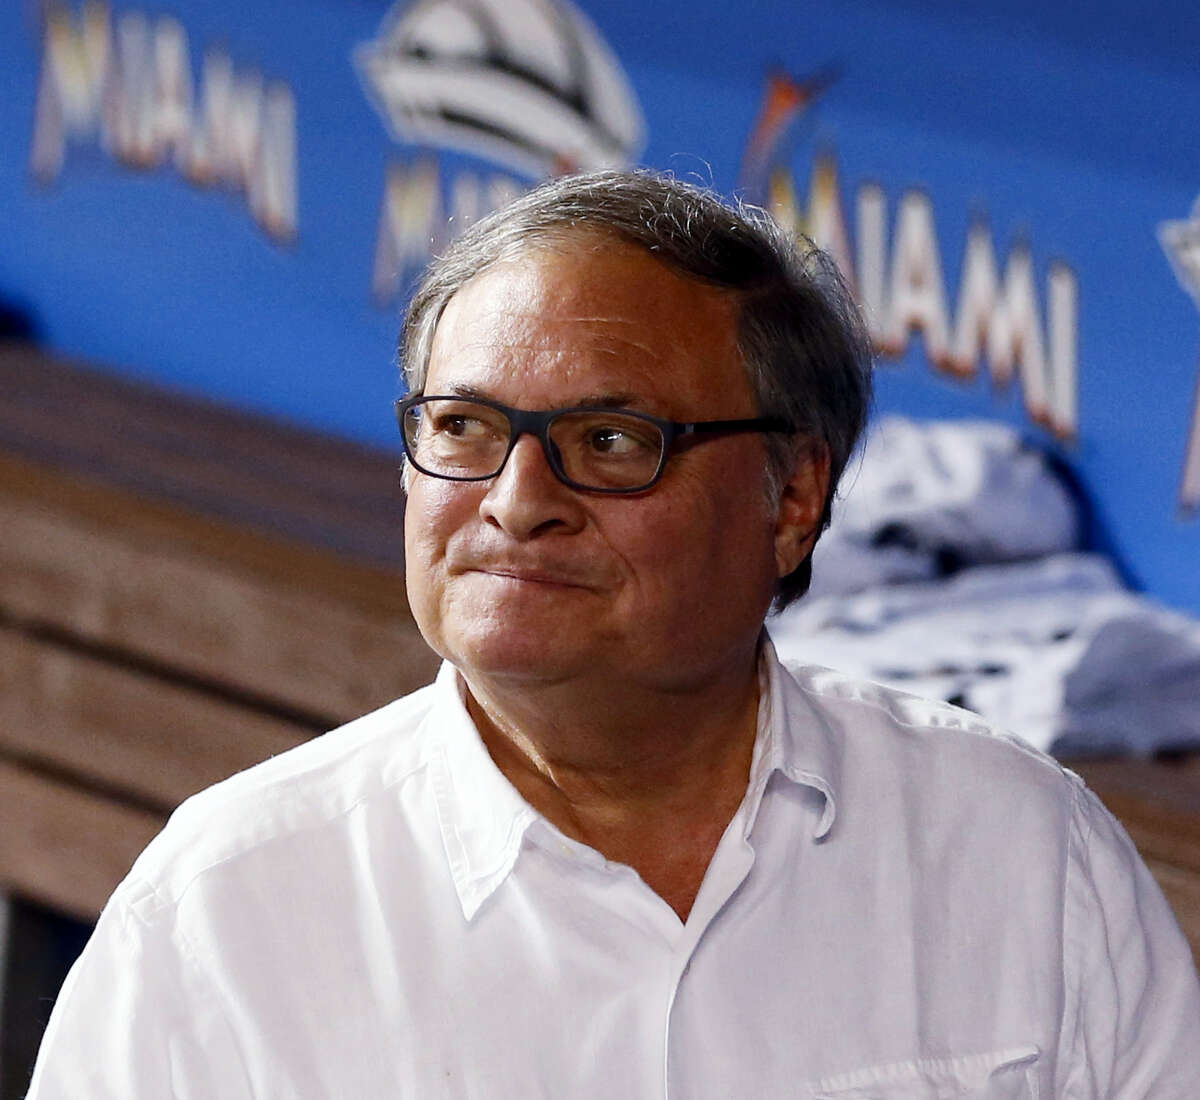 Miami Marlins owner and CEO Jeffrey Loria.